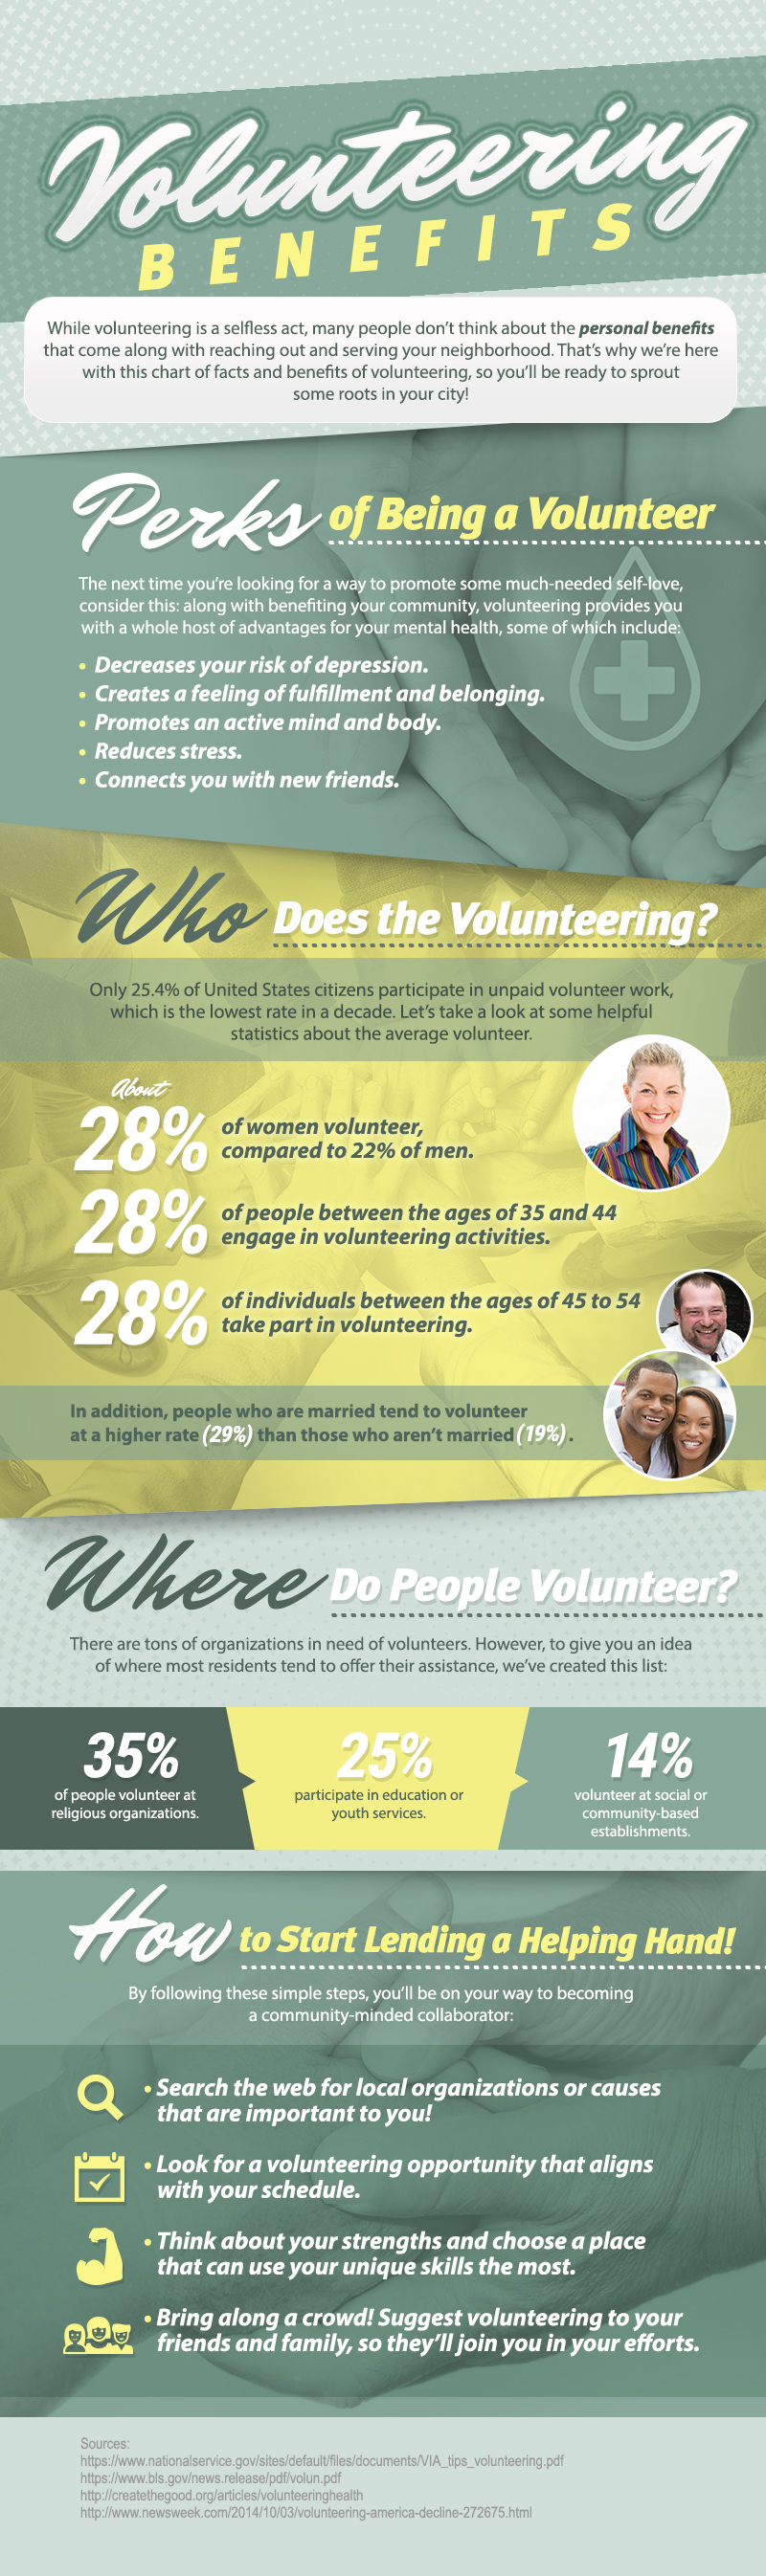 Volunteering Infographic